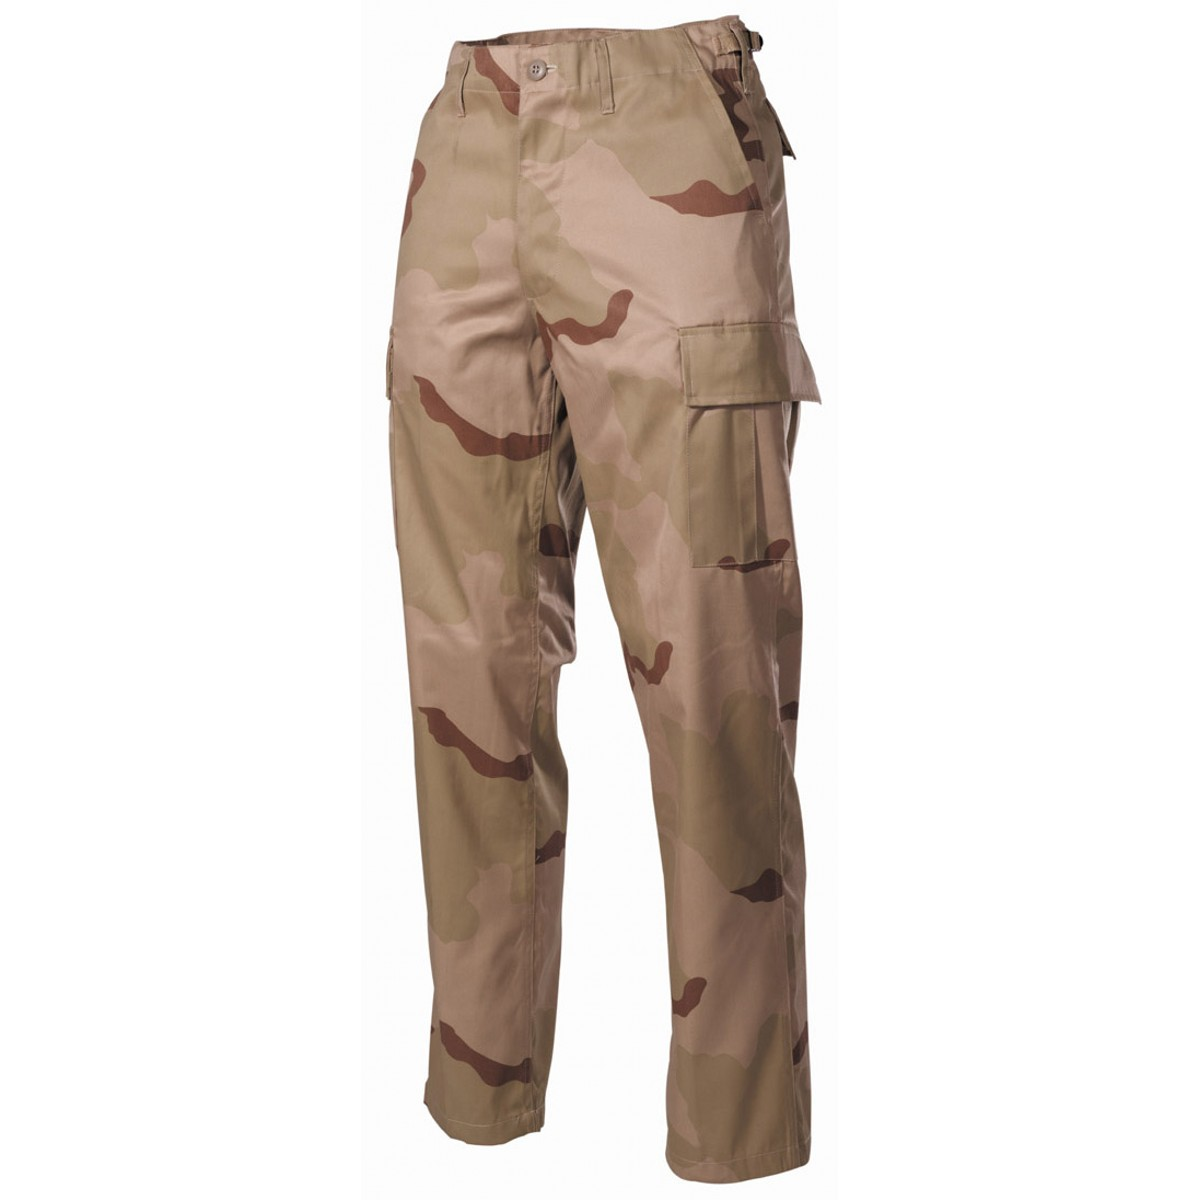 Desert Camo Pattern BDU Field Pants